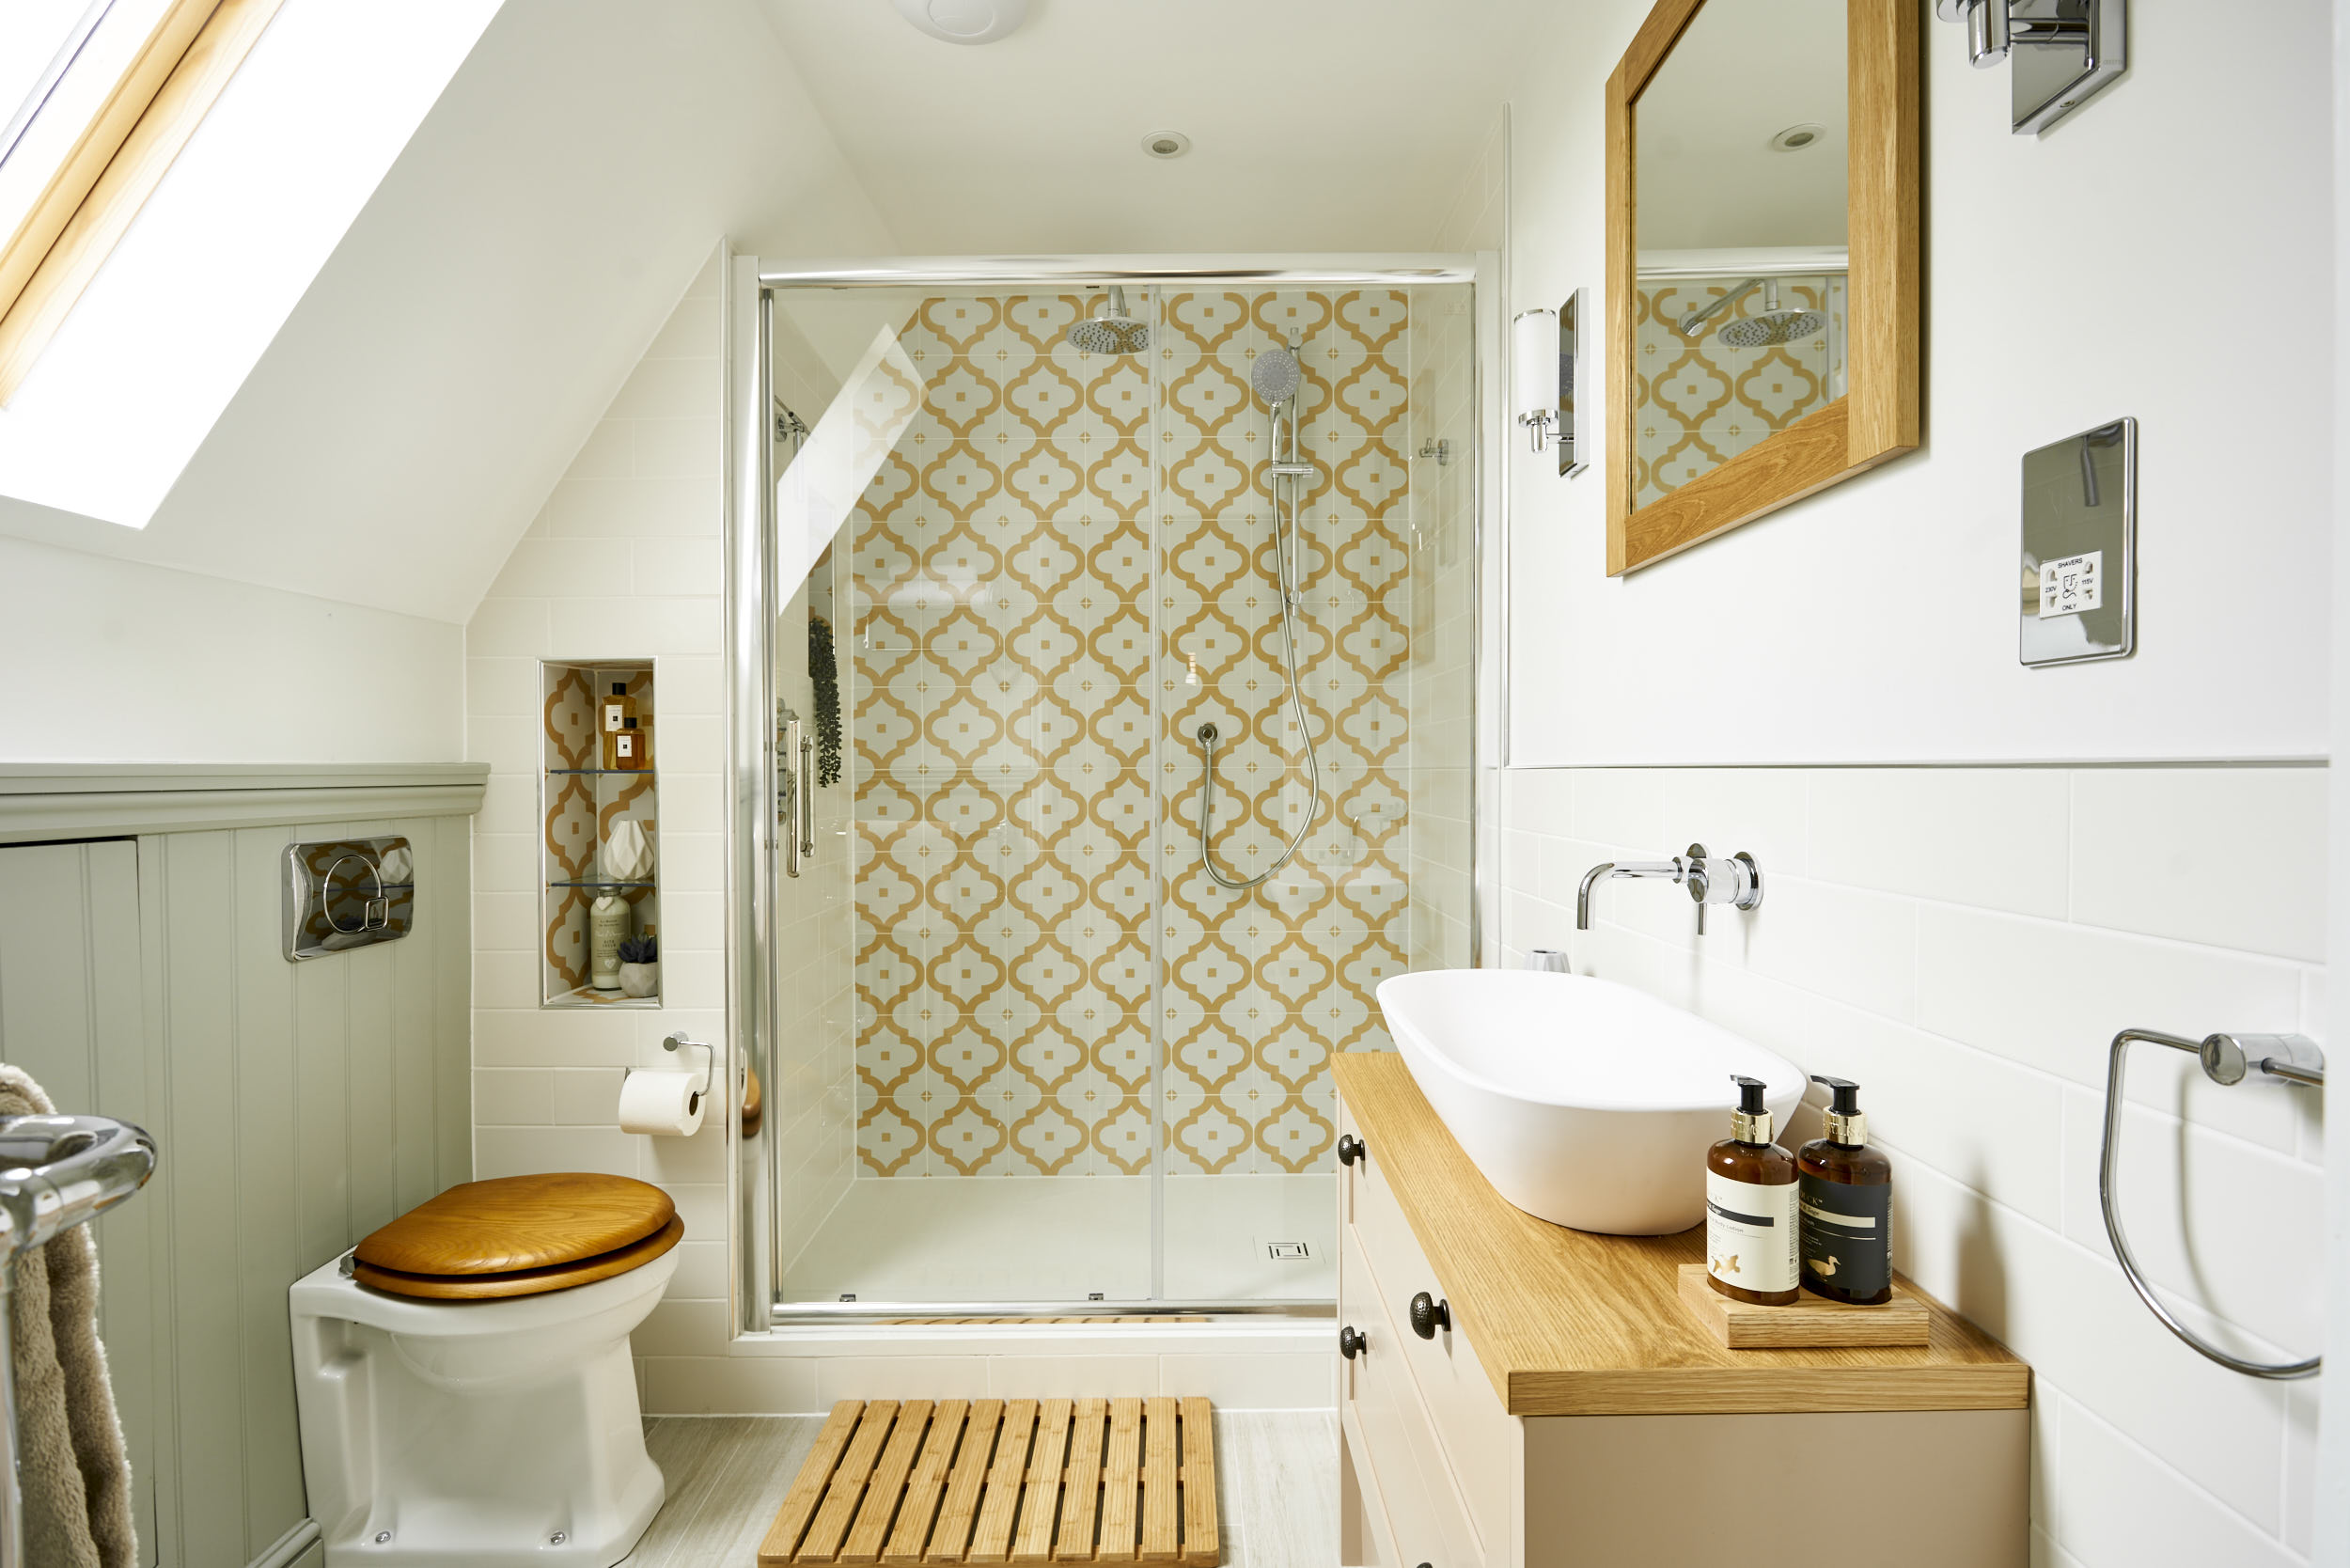 9 Design Tips For A Luxury Attic Bathroom You Ll Love The